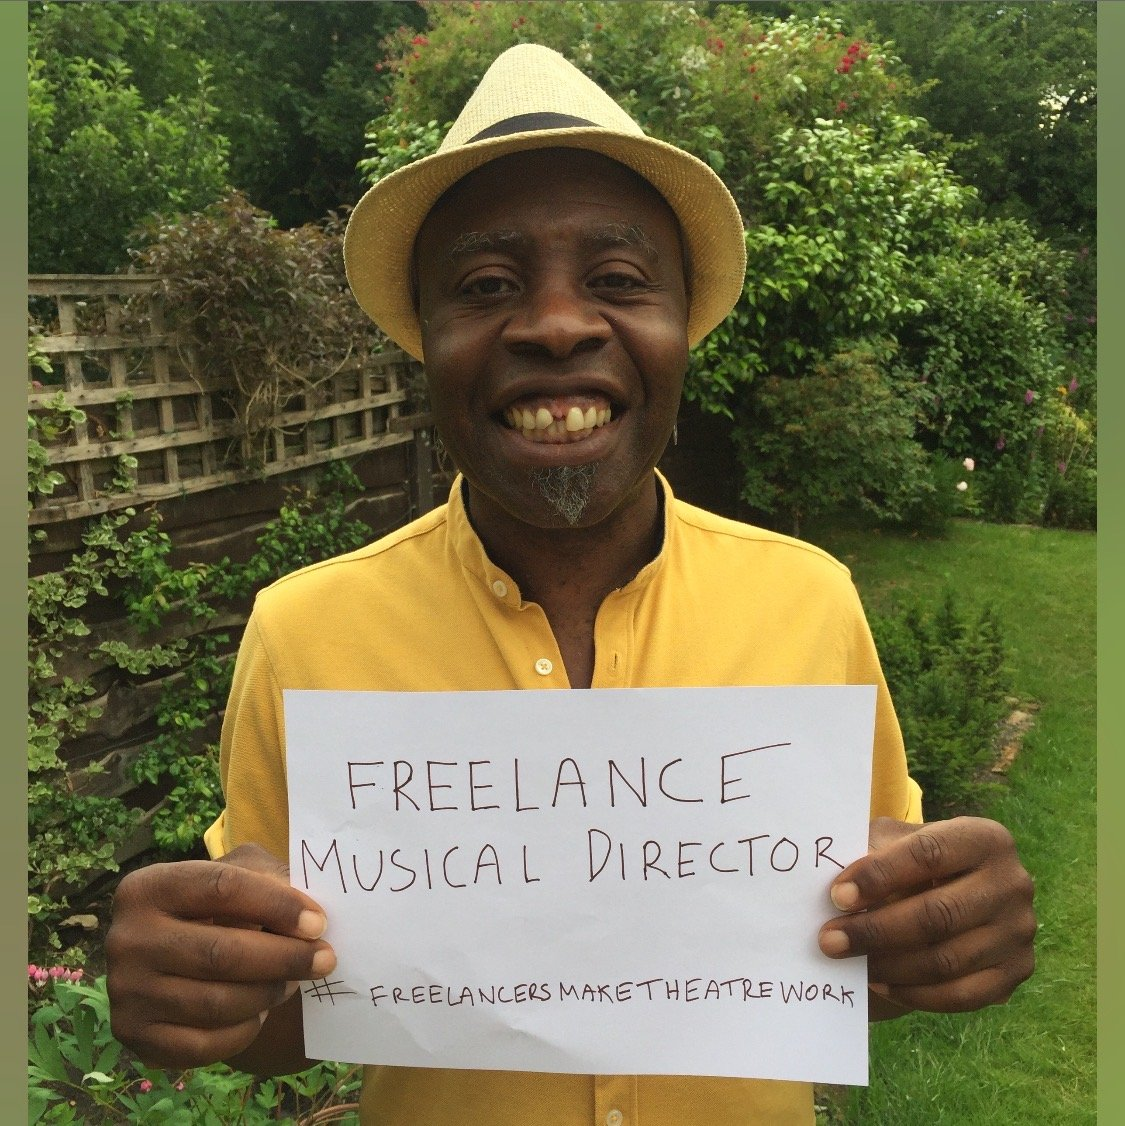 Photo of a musical director holding up a sign